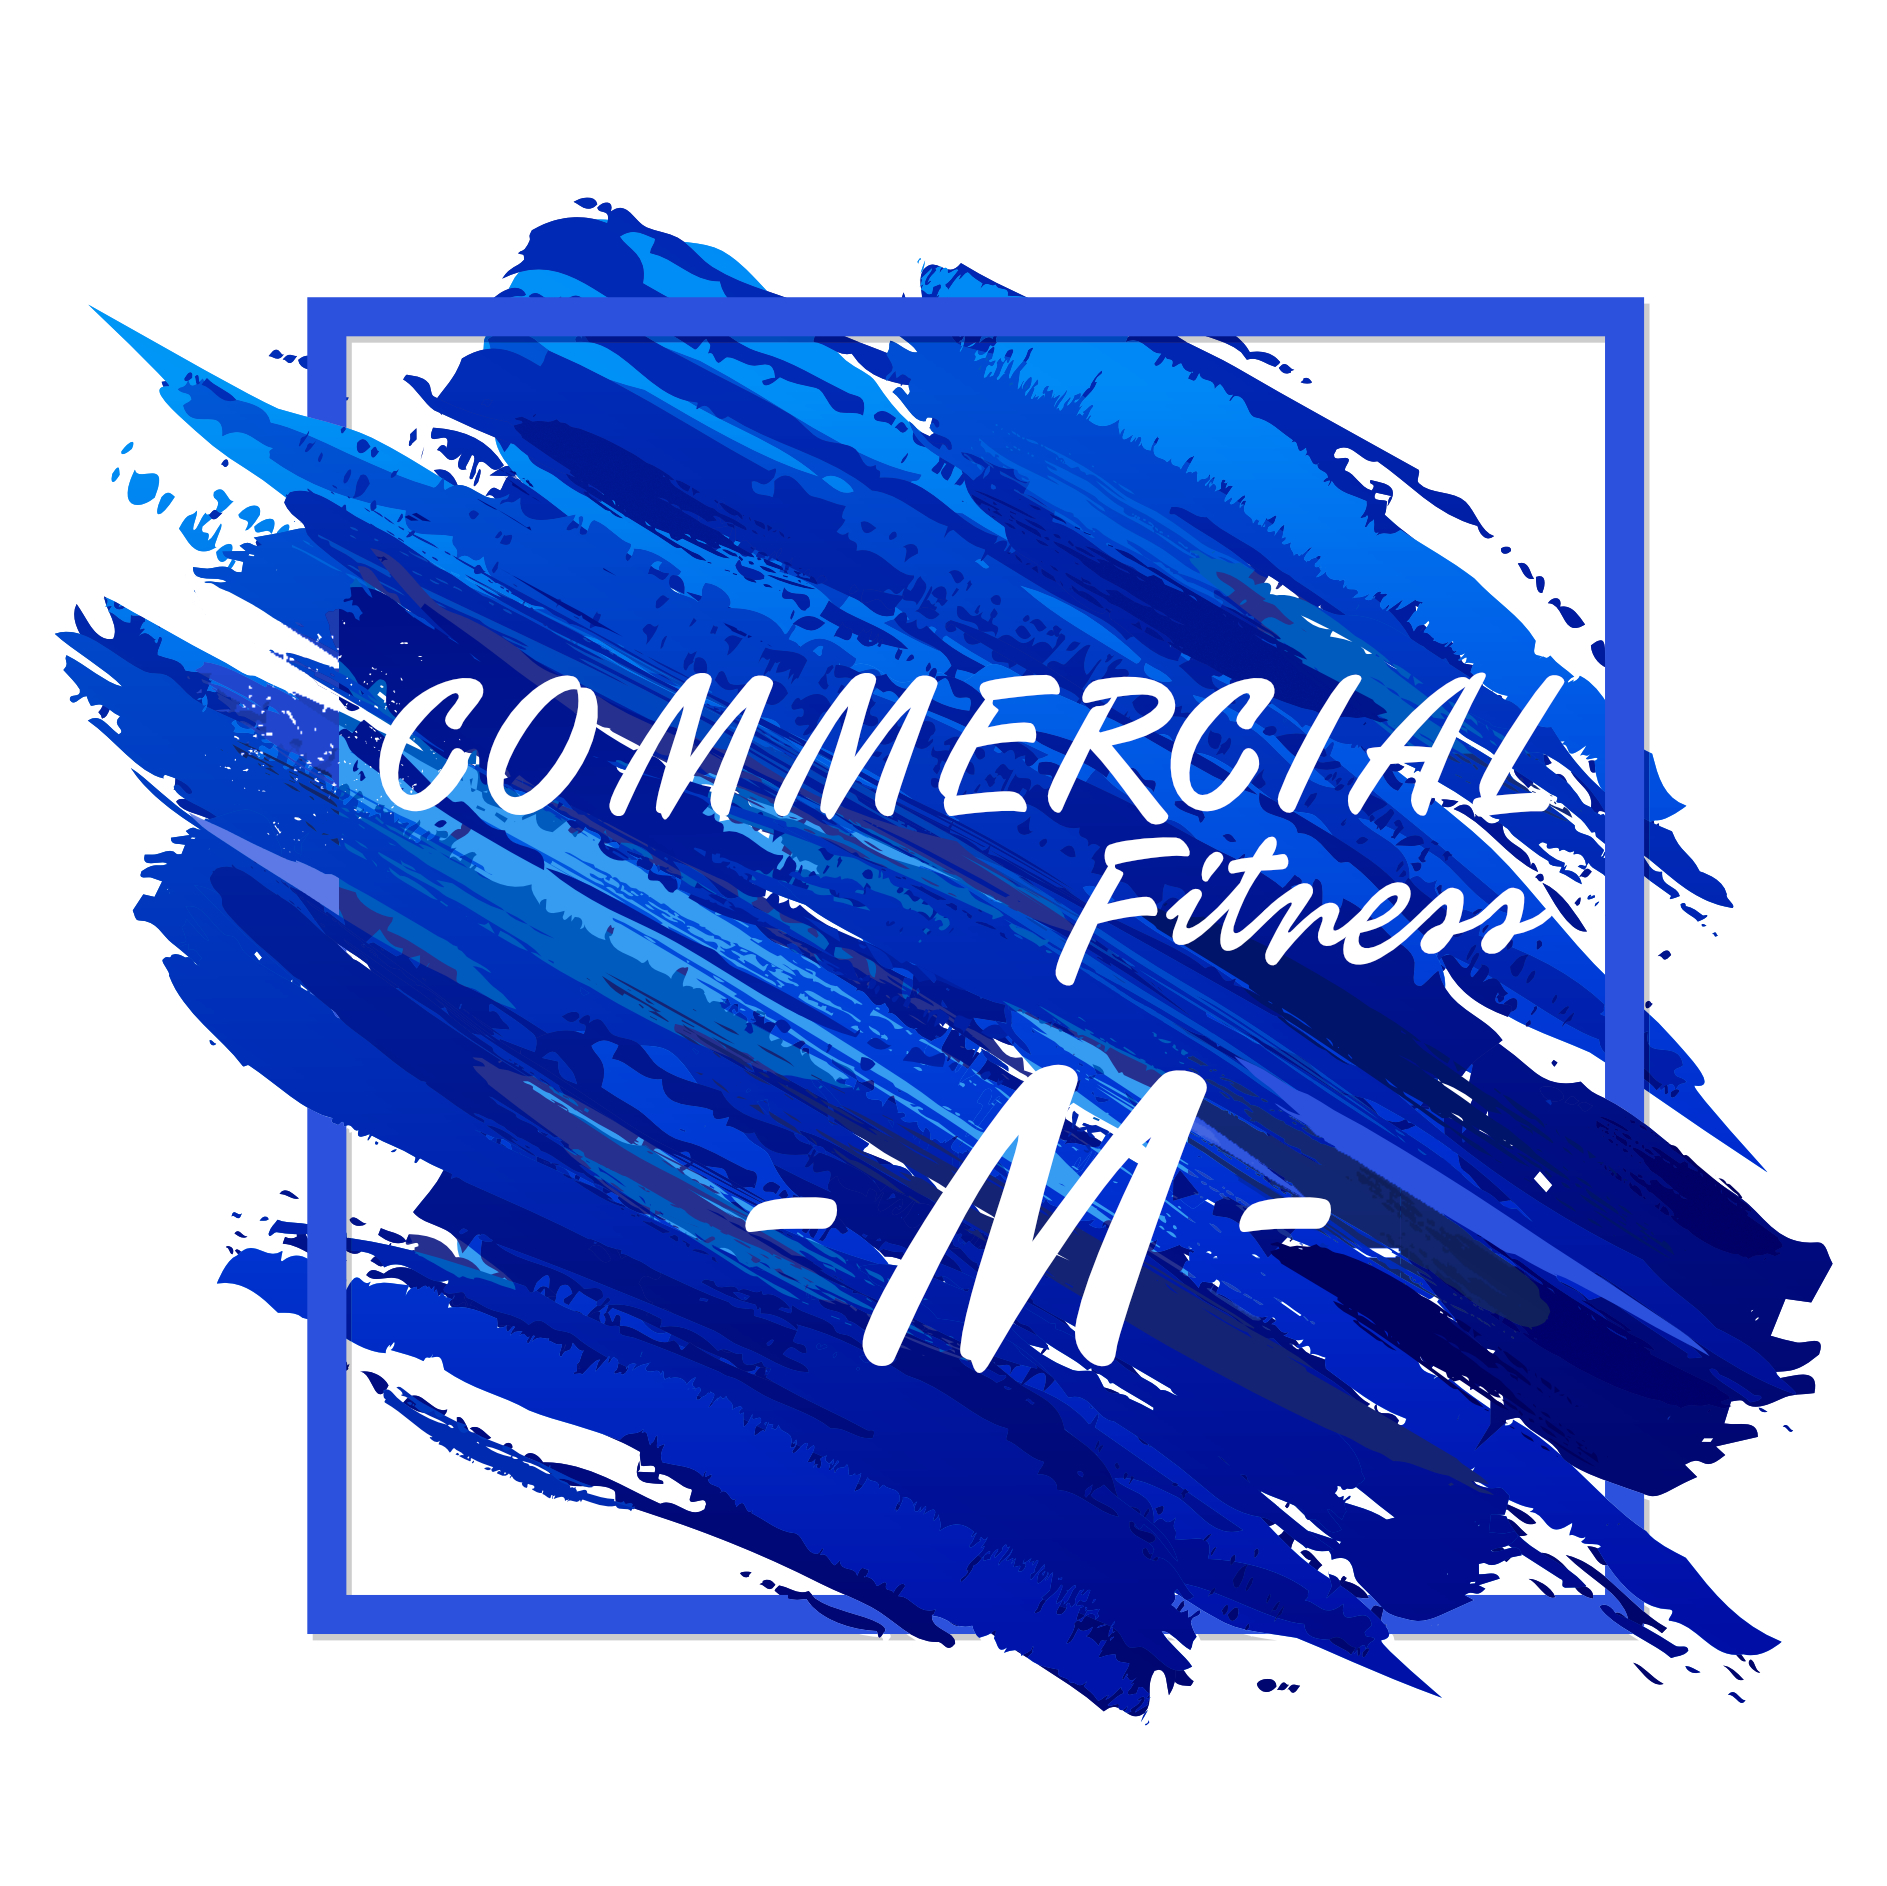 Commercial Fitness - Set M